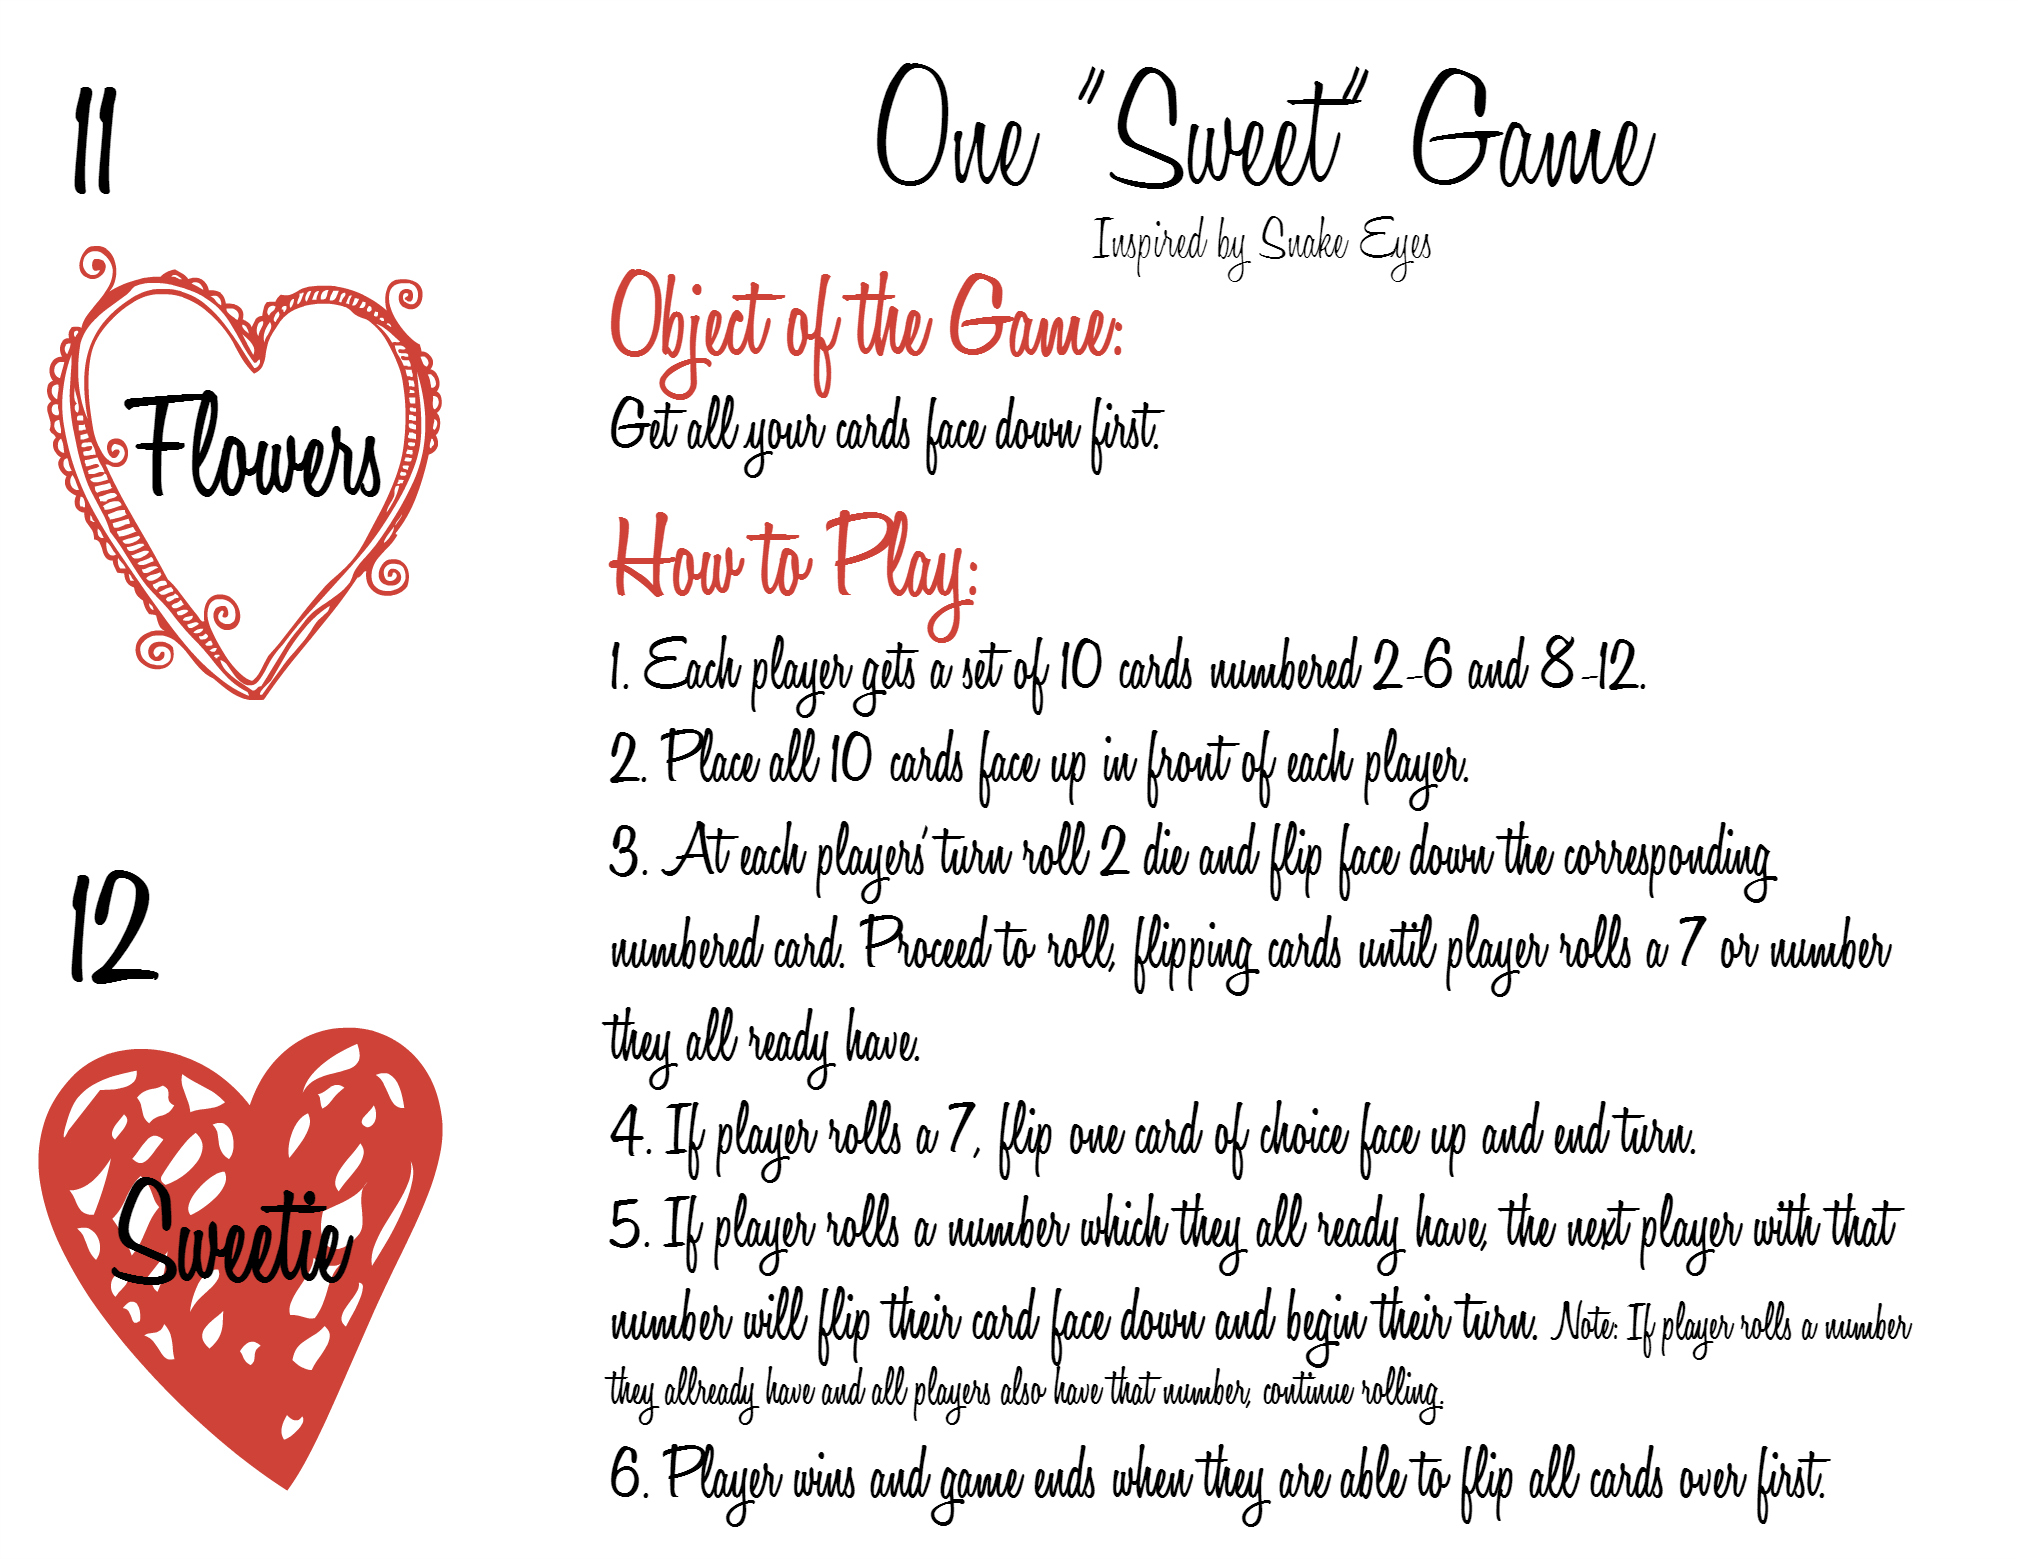 Valentines Card Game Printables 11-12 and Instructions